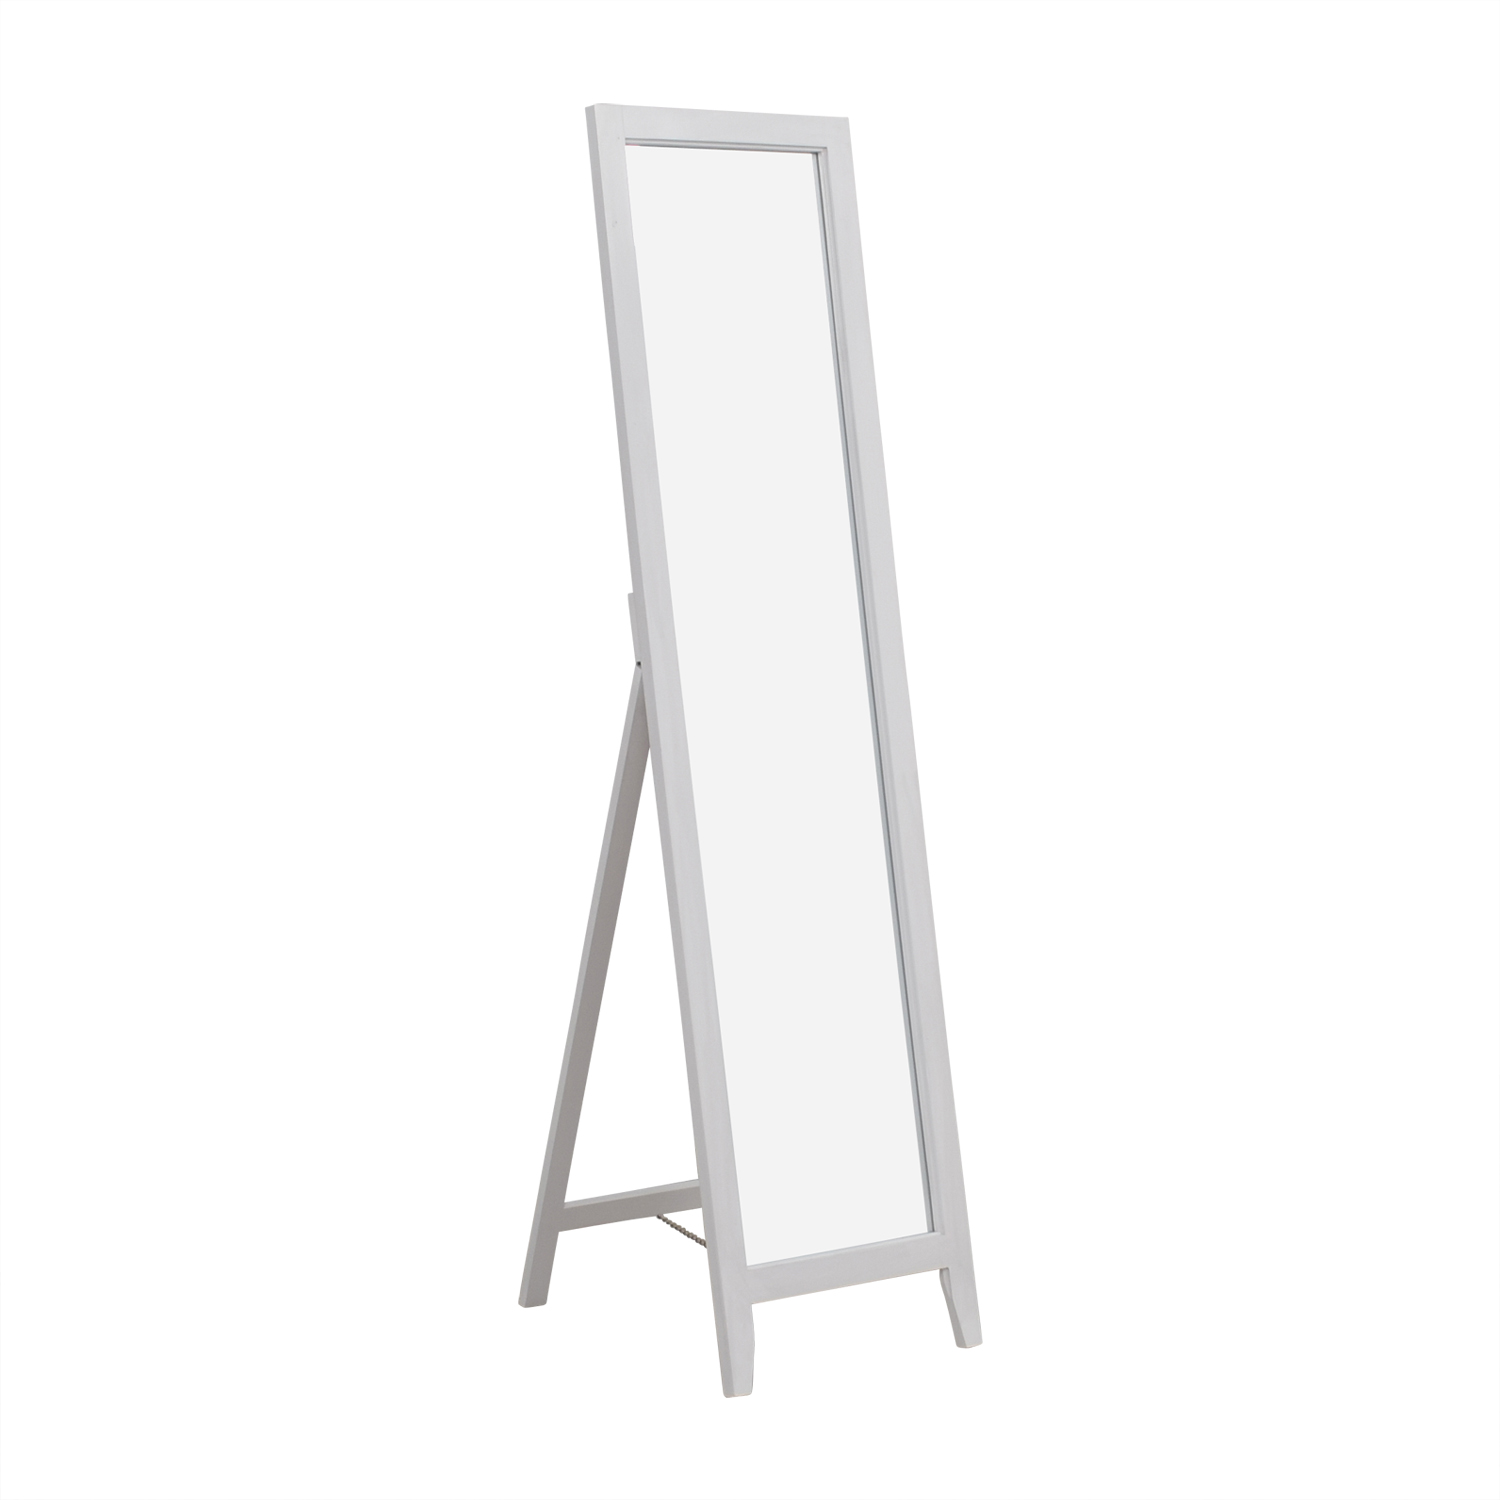 Kings Brand White Wood Frame Floor Mirror / Mirrors